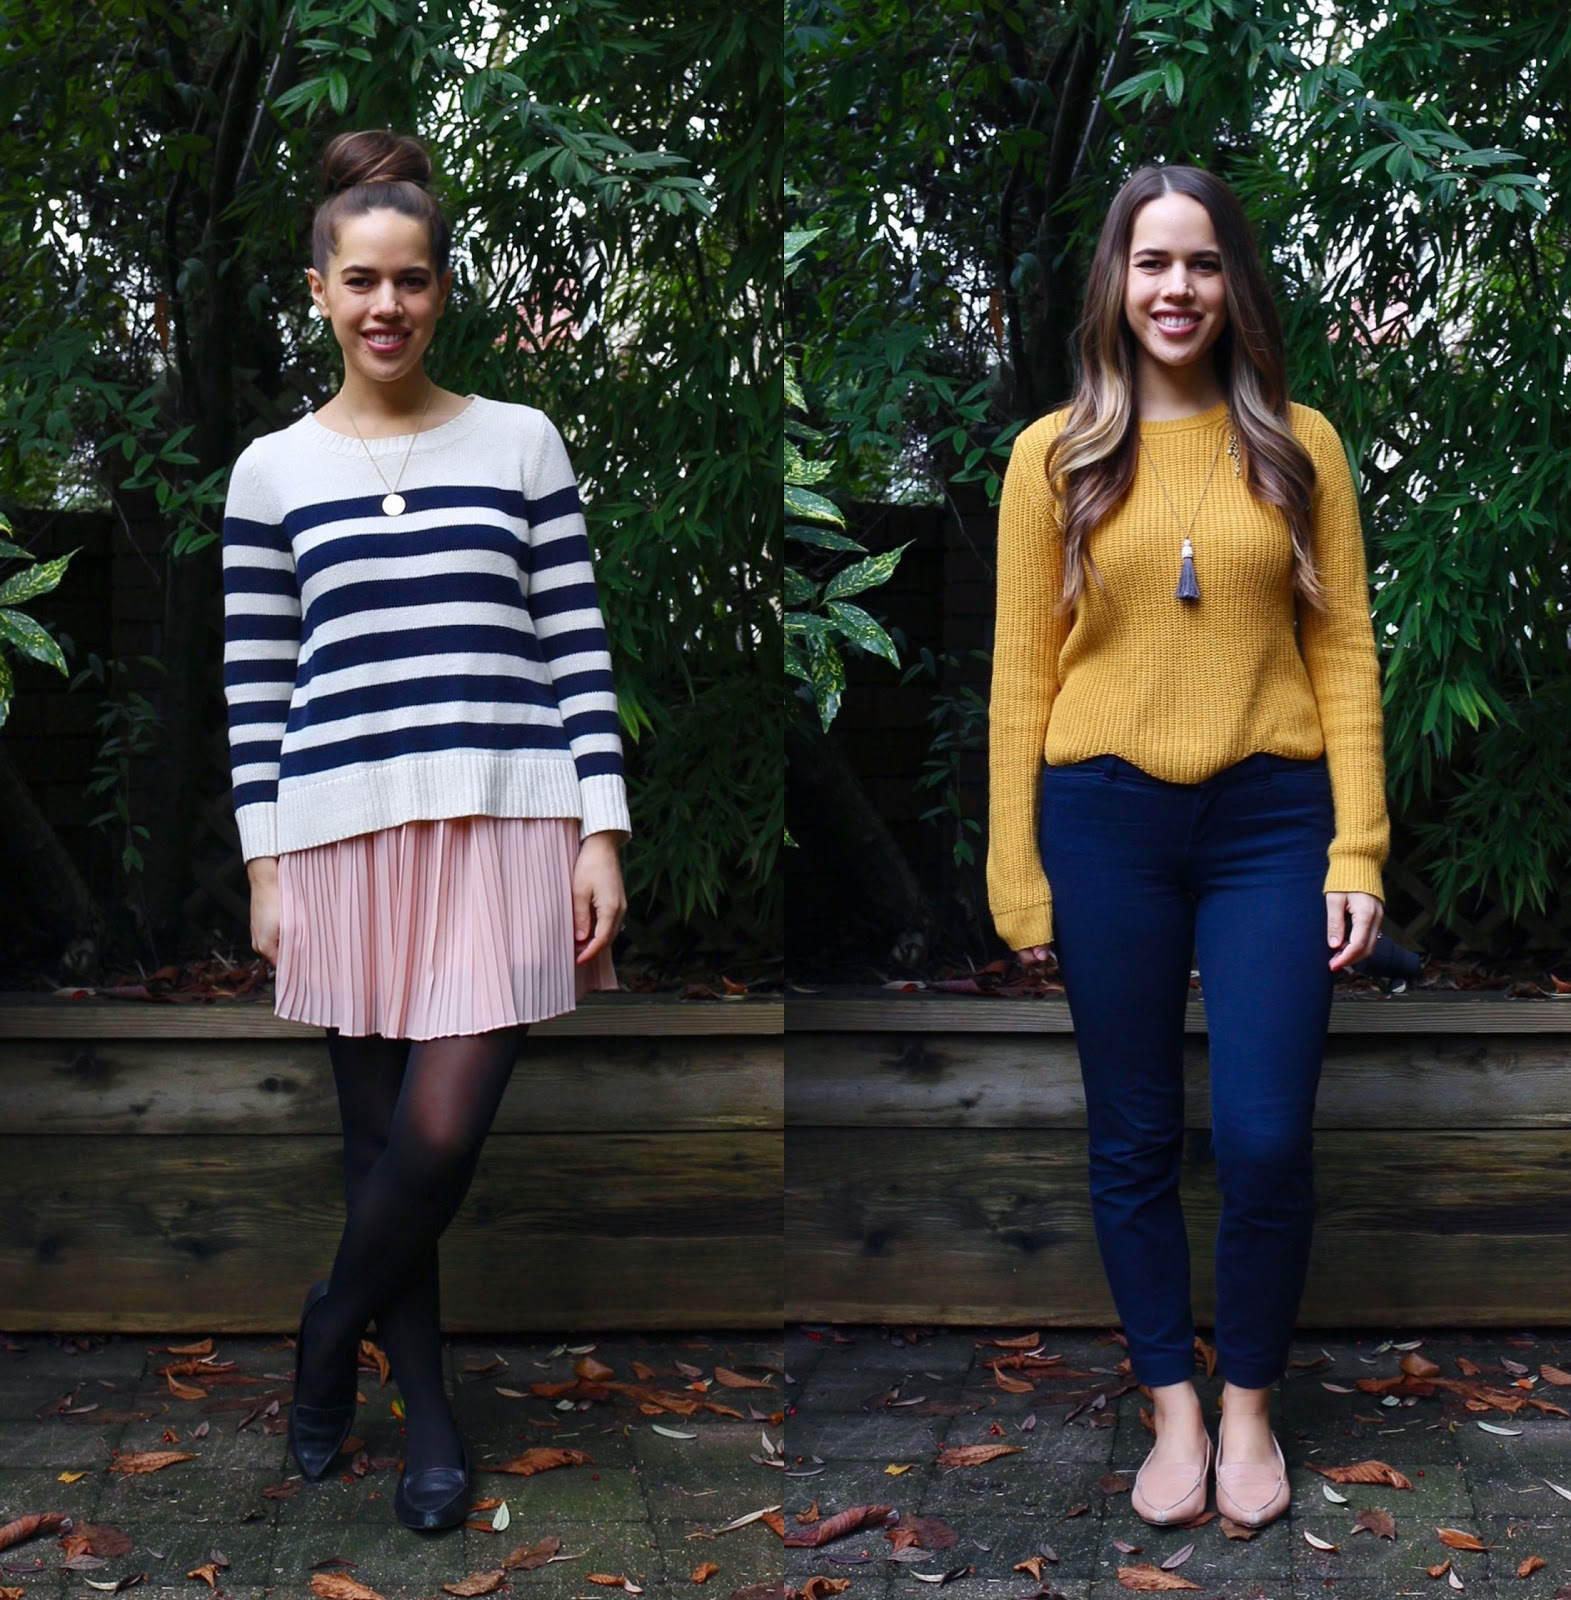 Jules in Flats - Winter Outfit Ideas for Work (Business Casual Workwear on a Budget)